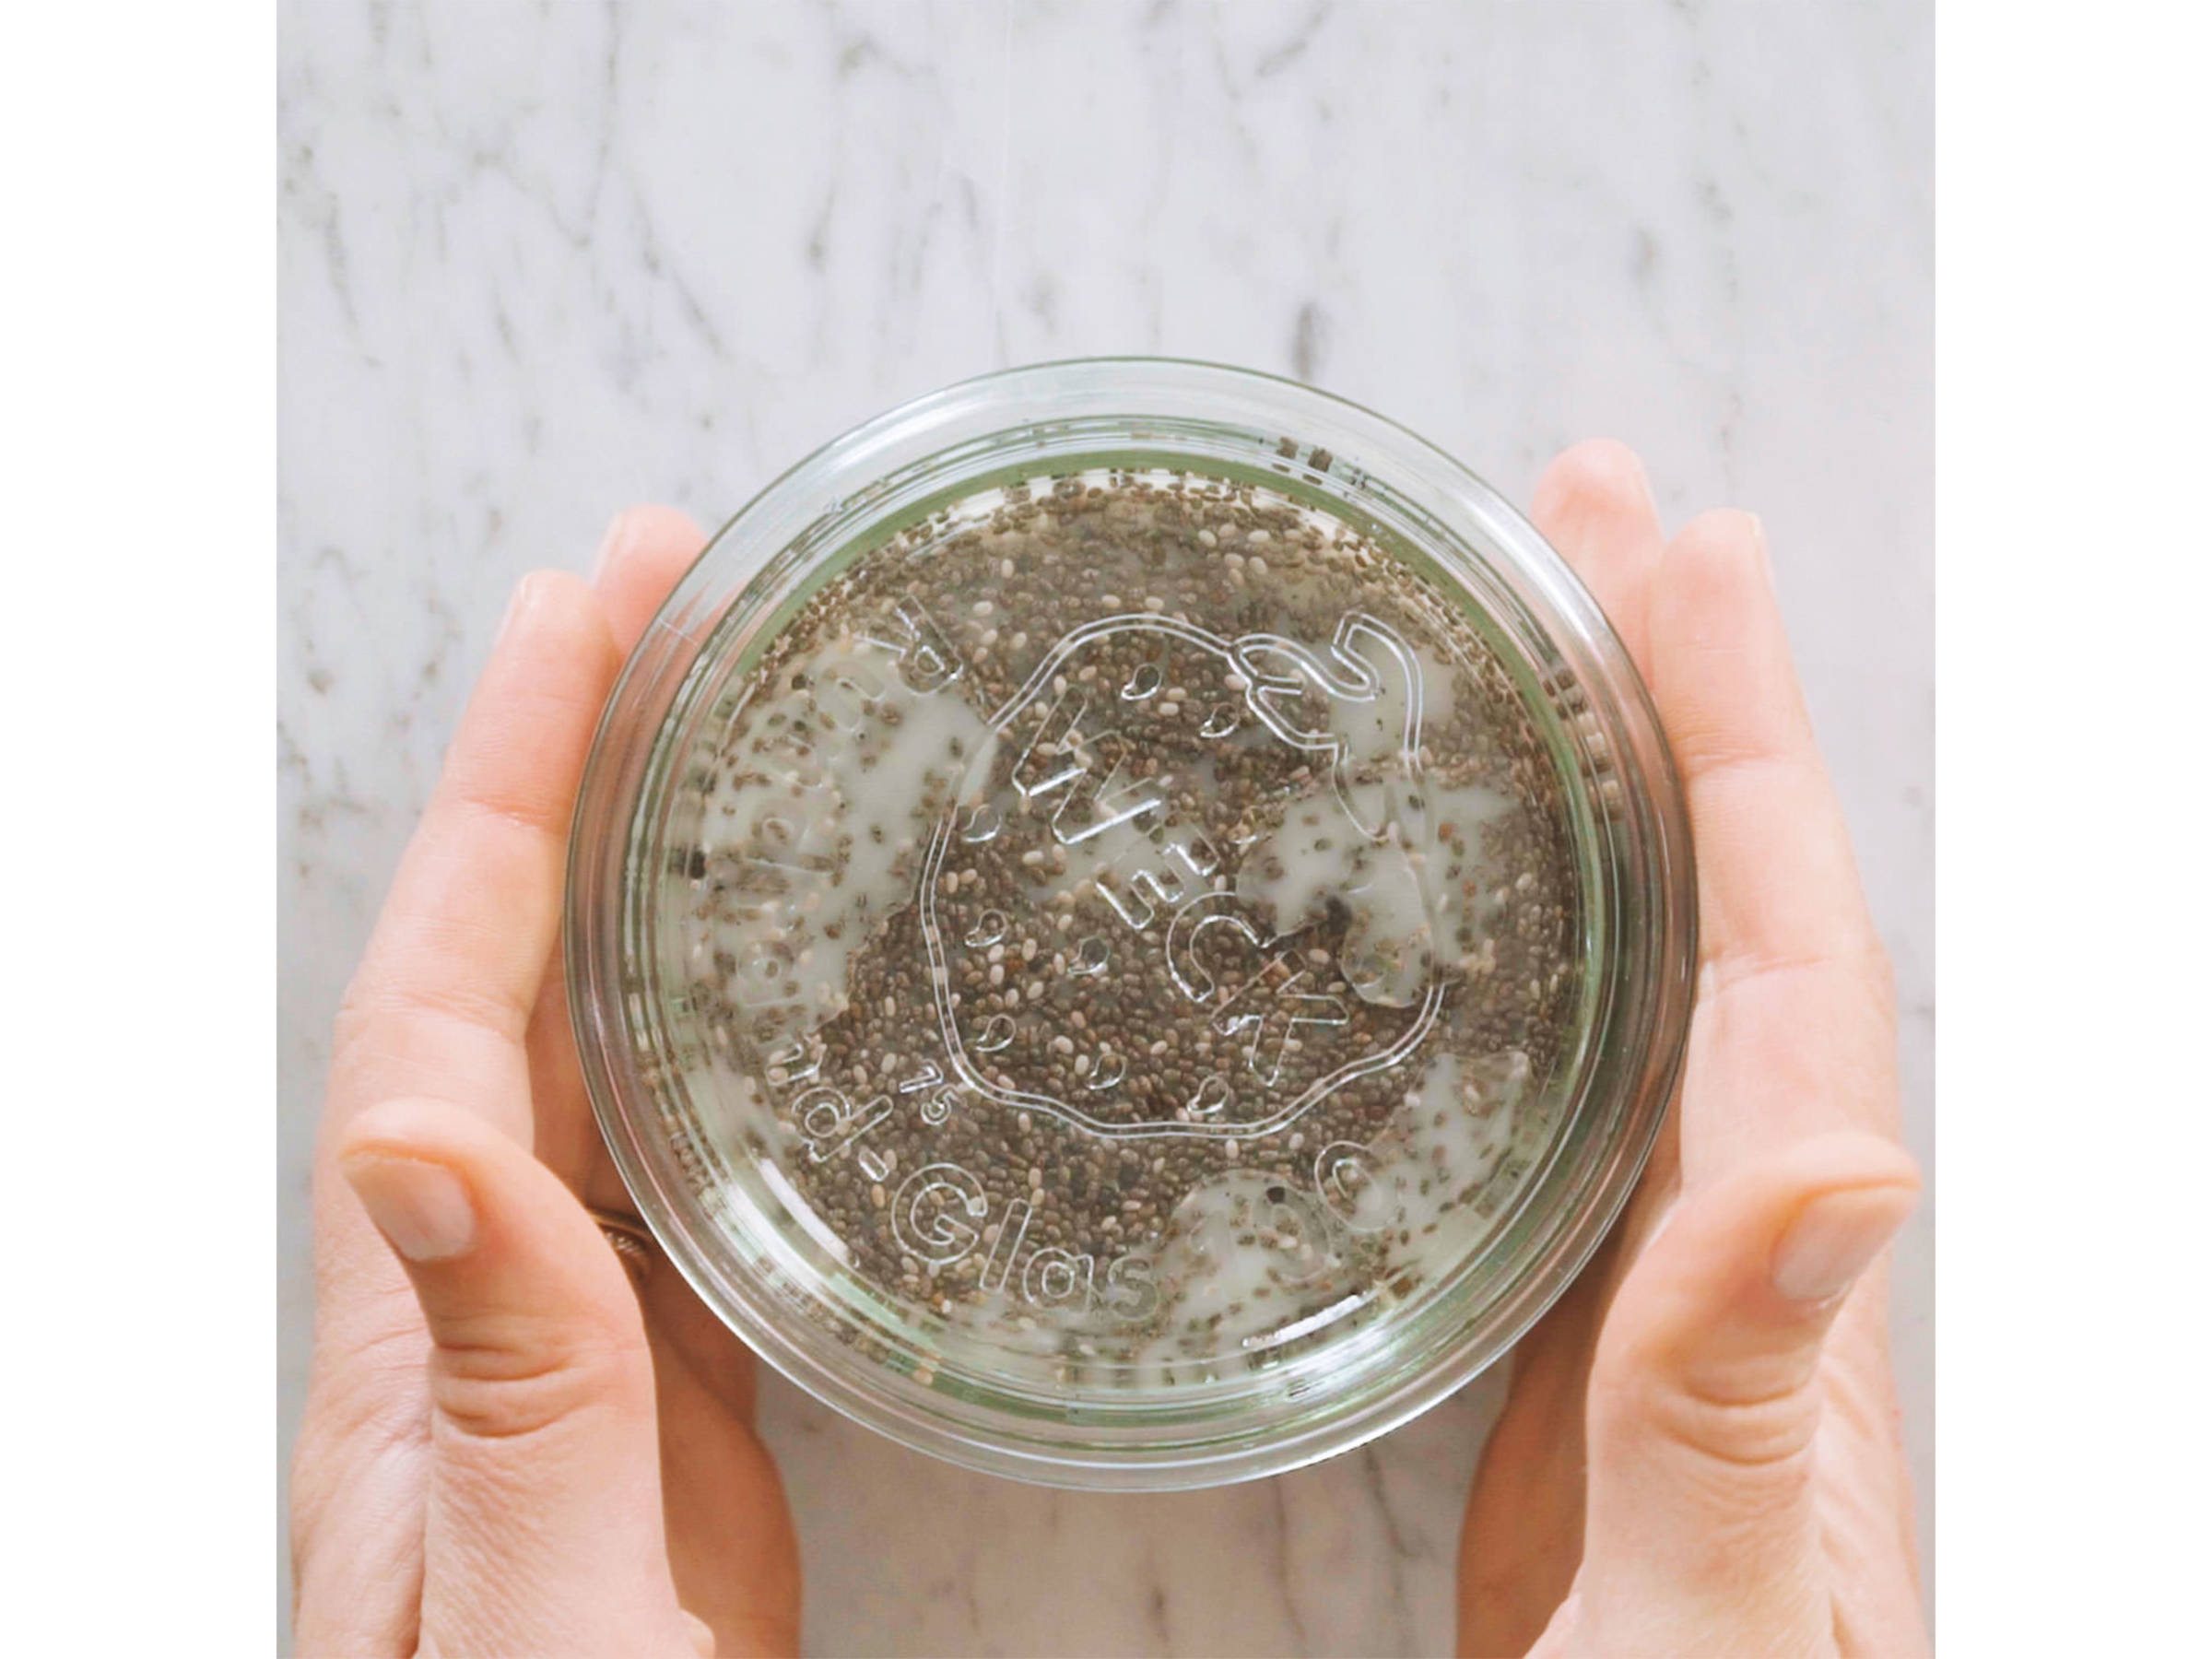 Add chia seeds and mix until combined. Cover and refrigerate overnight.